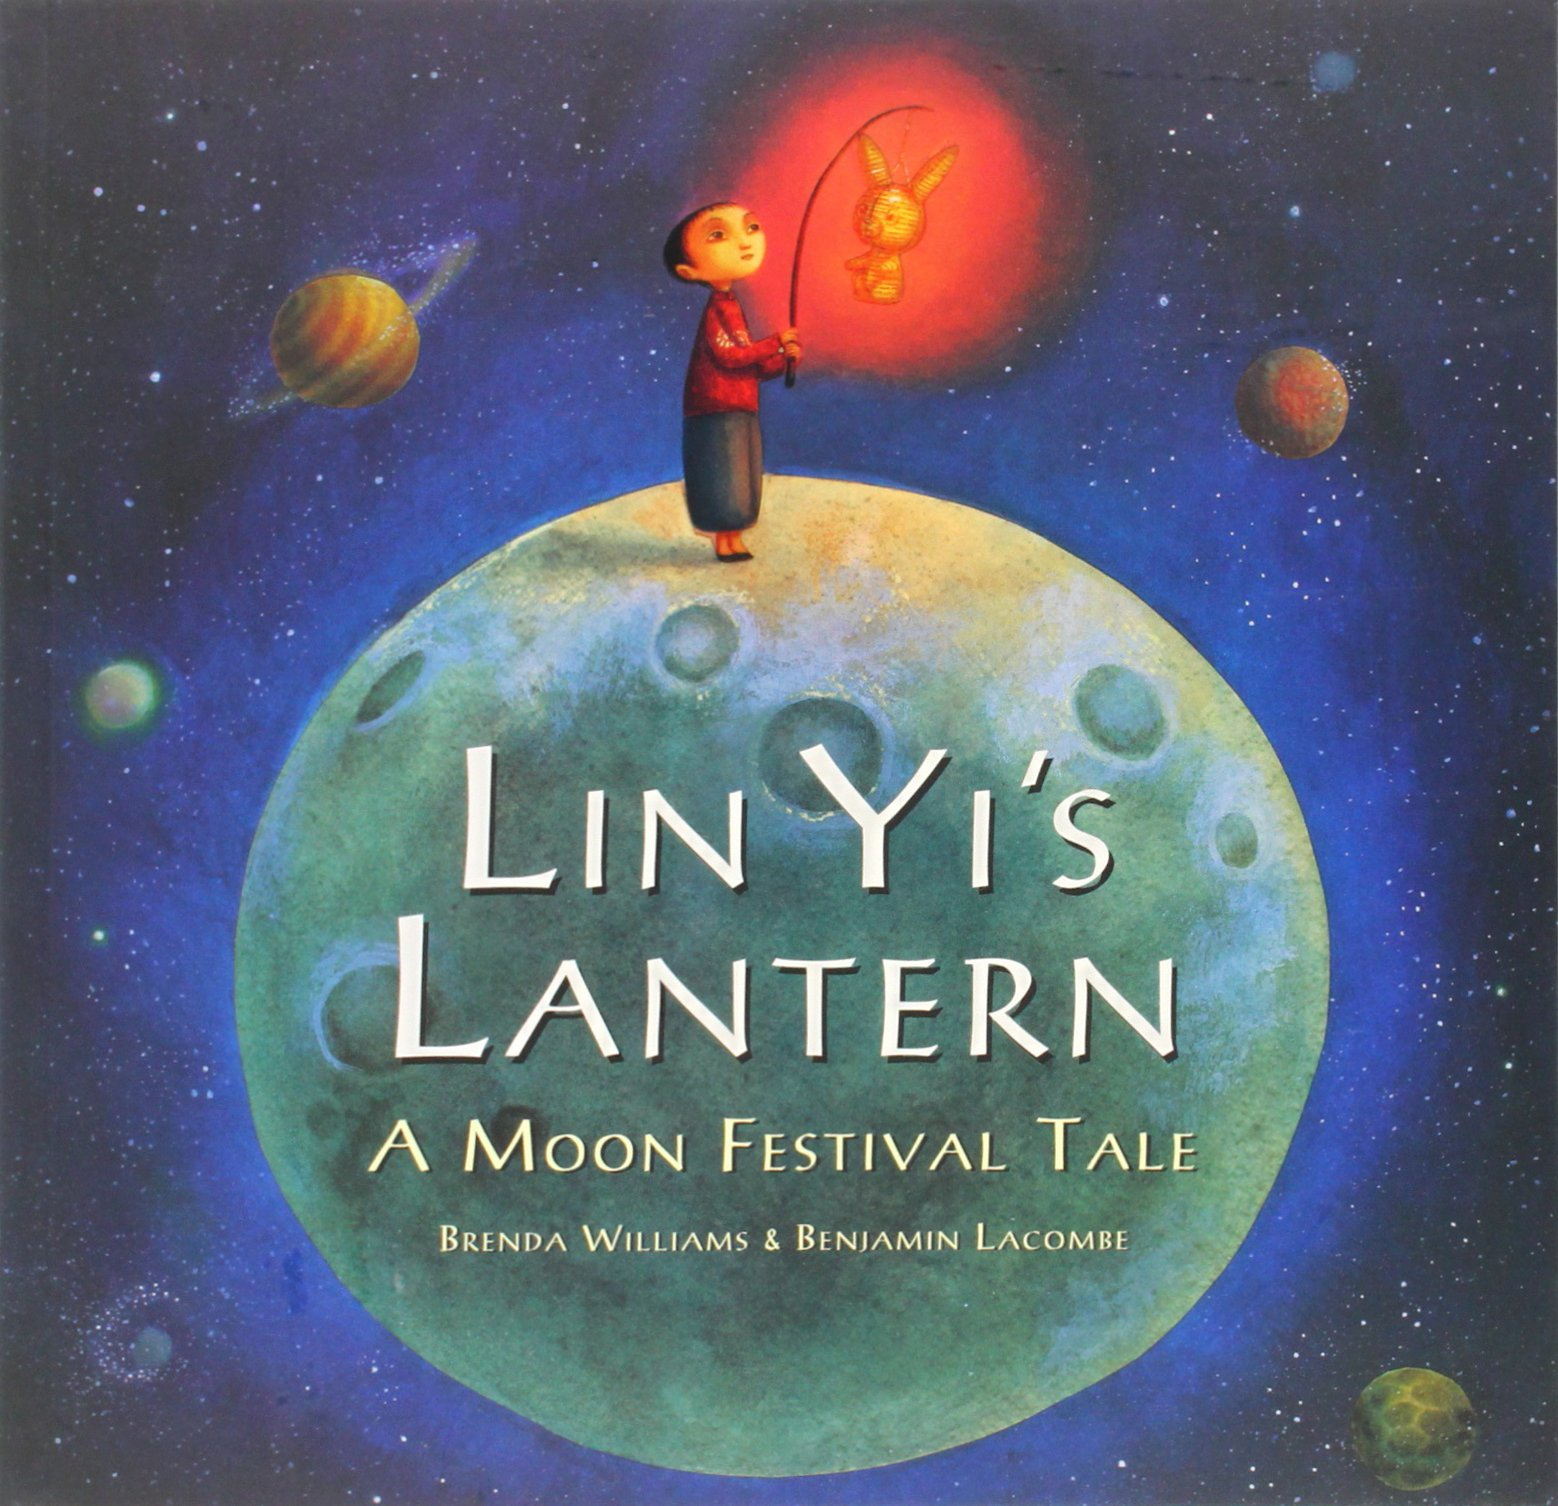 Image result for lin yi's lantern